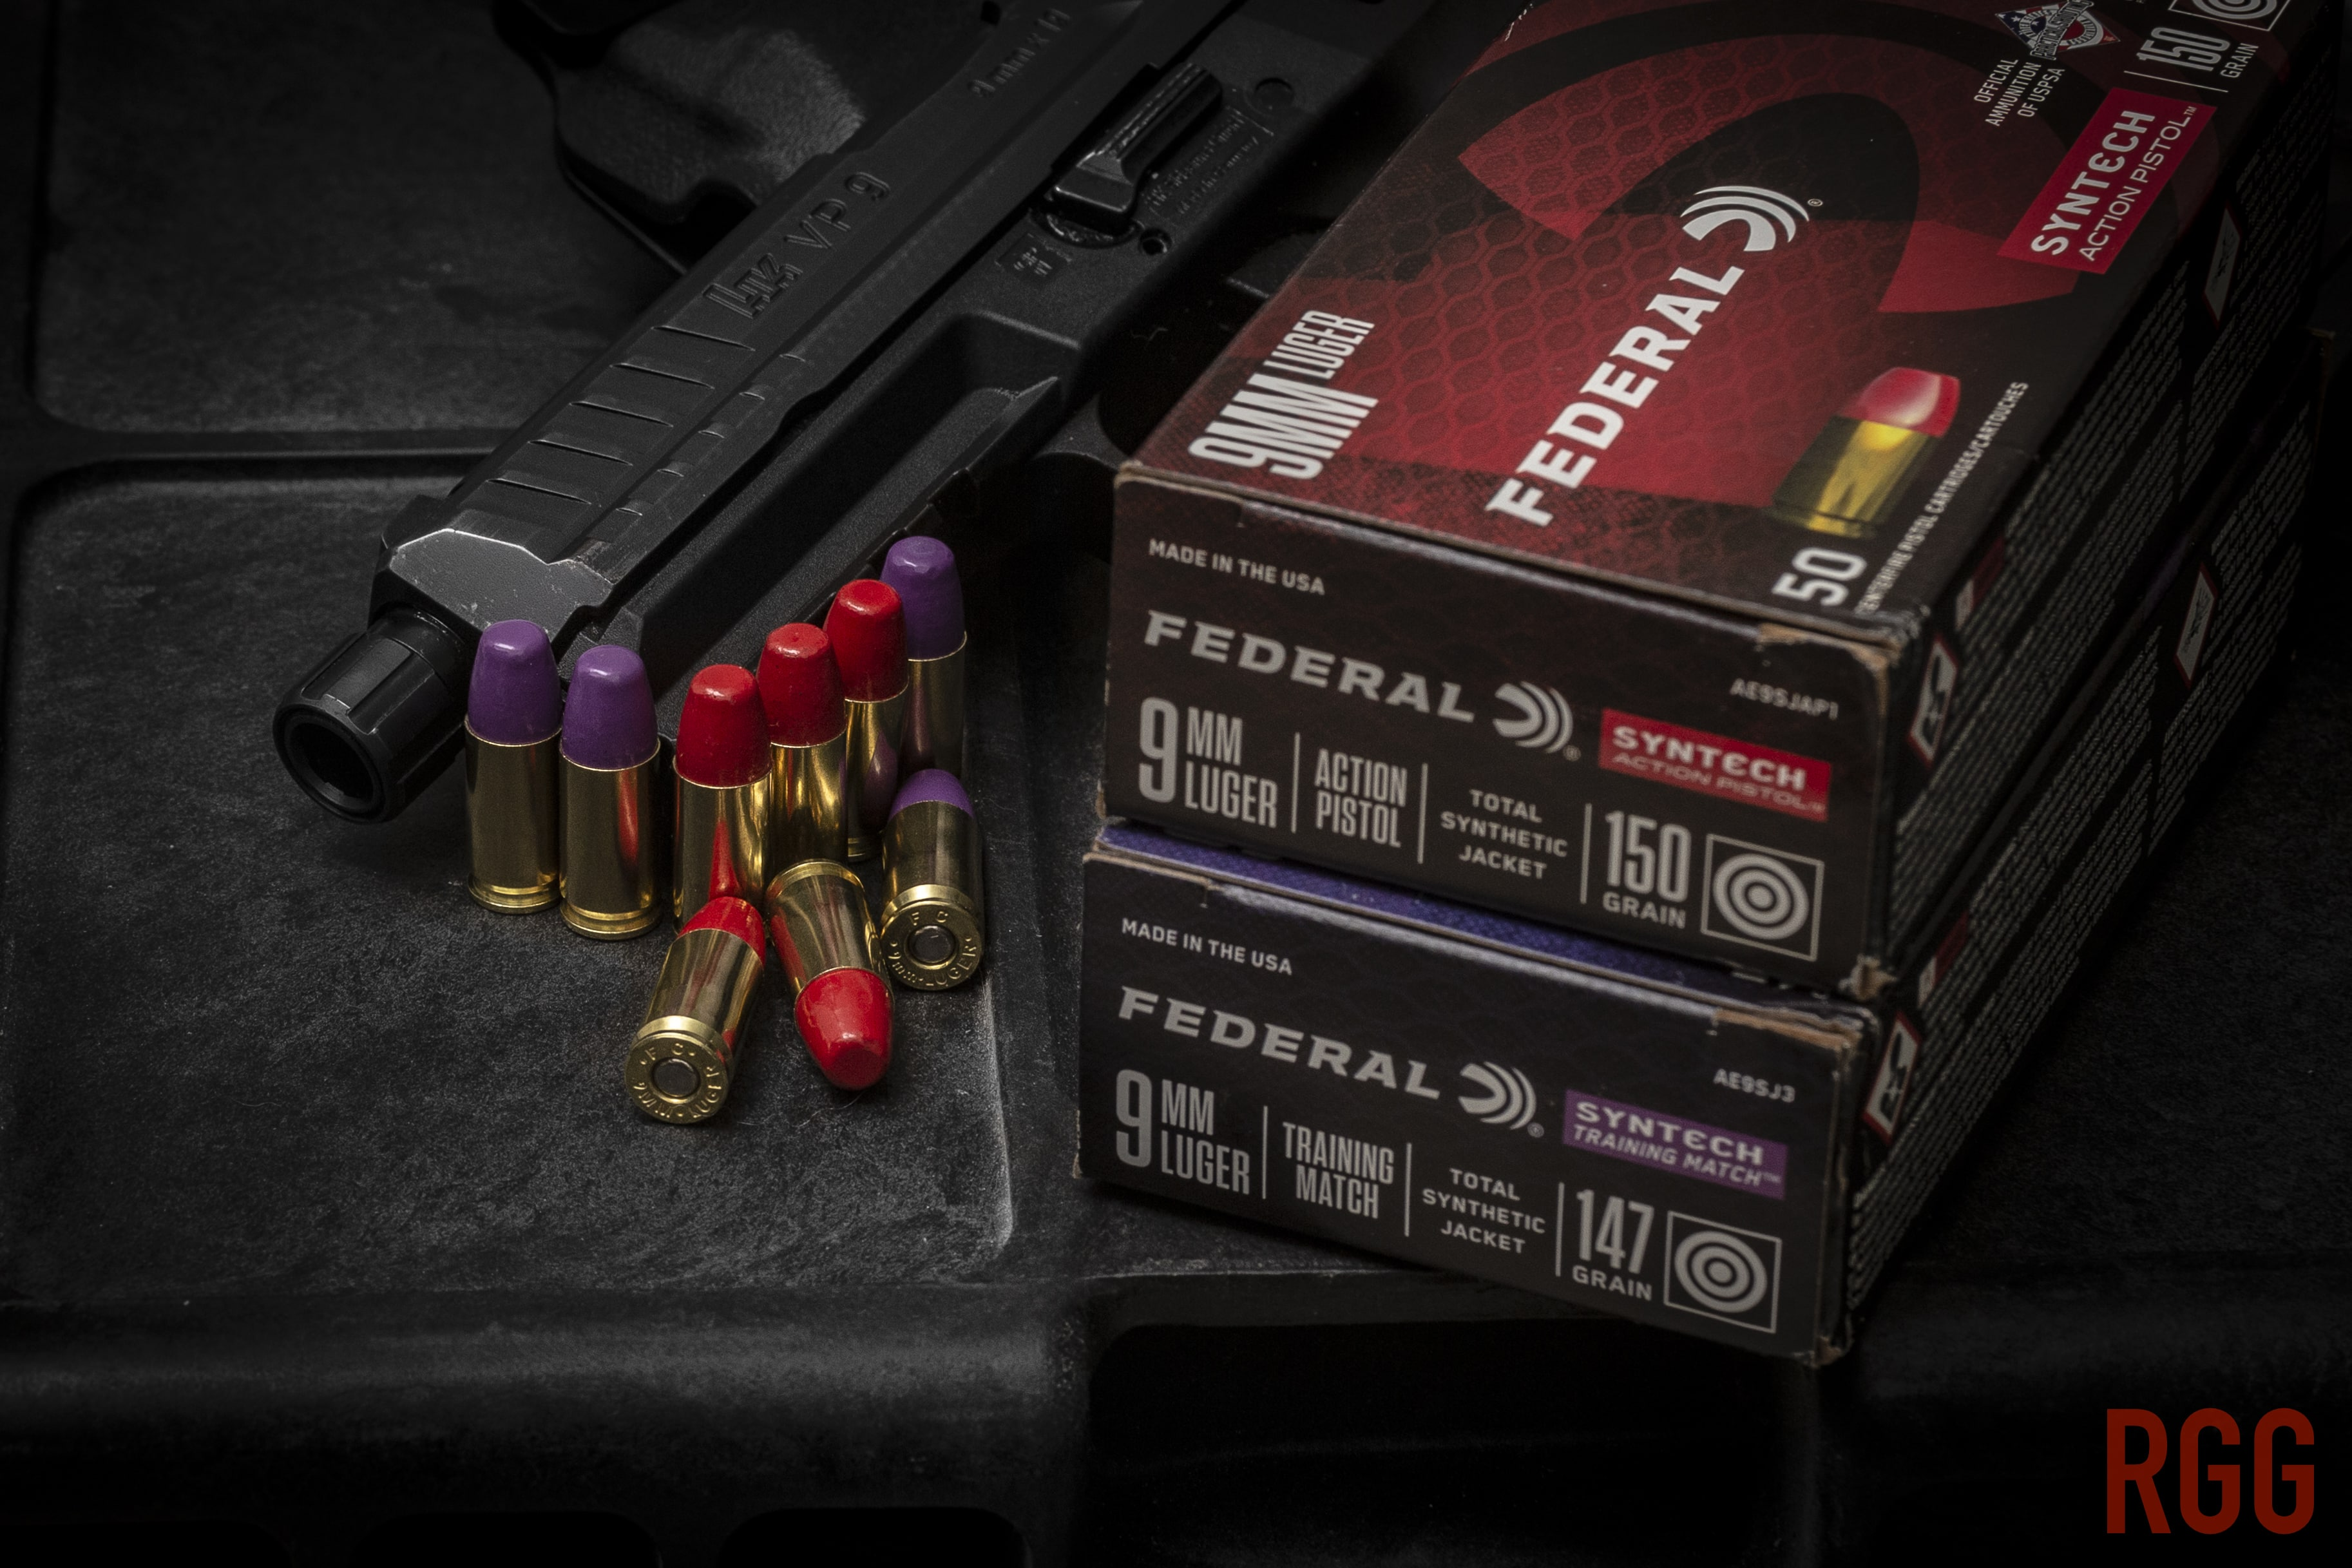 Federal Premium Syntech 9mm Total Synthetic Jacket Ammunition.